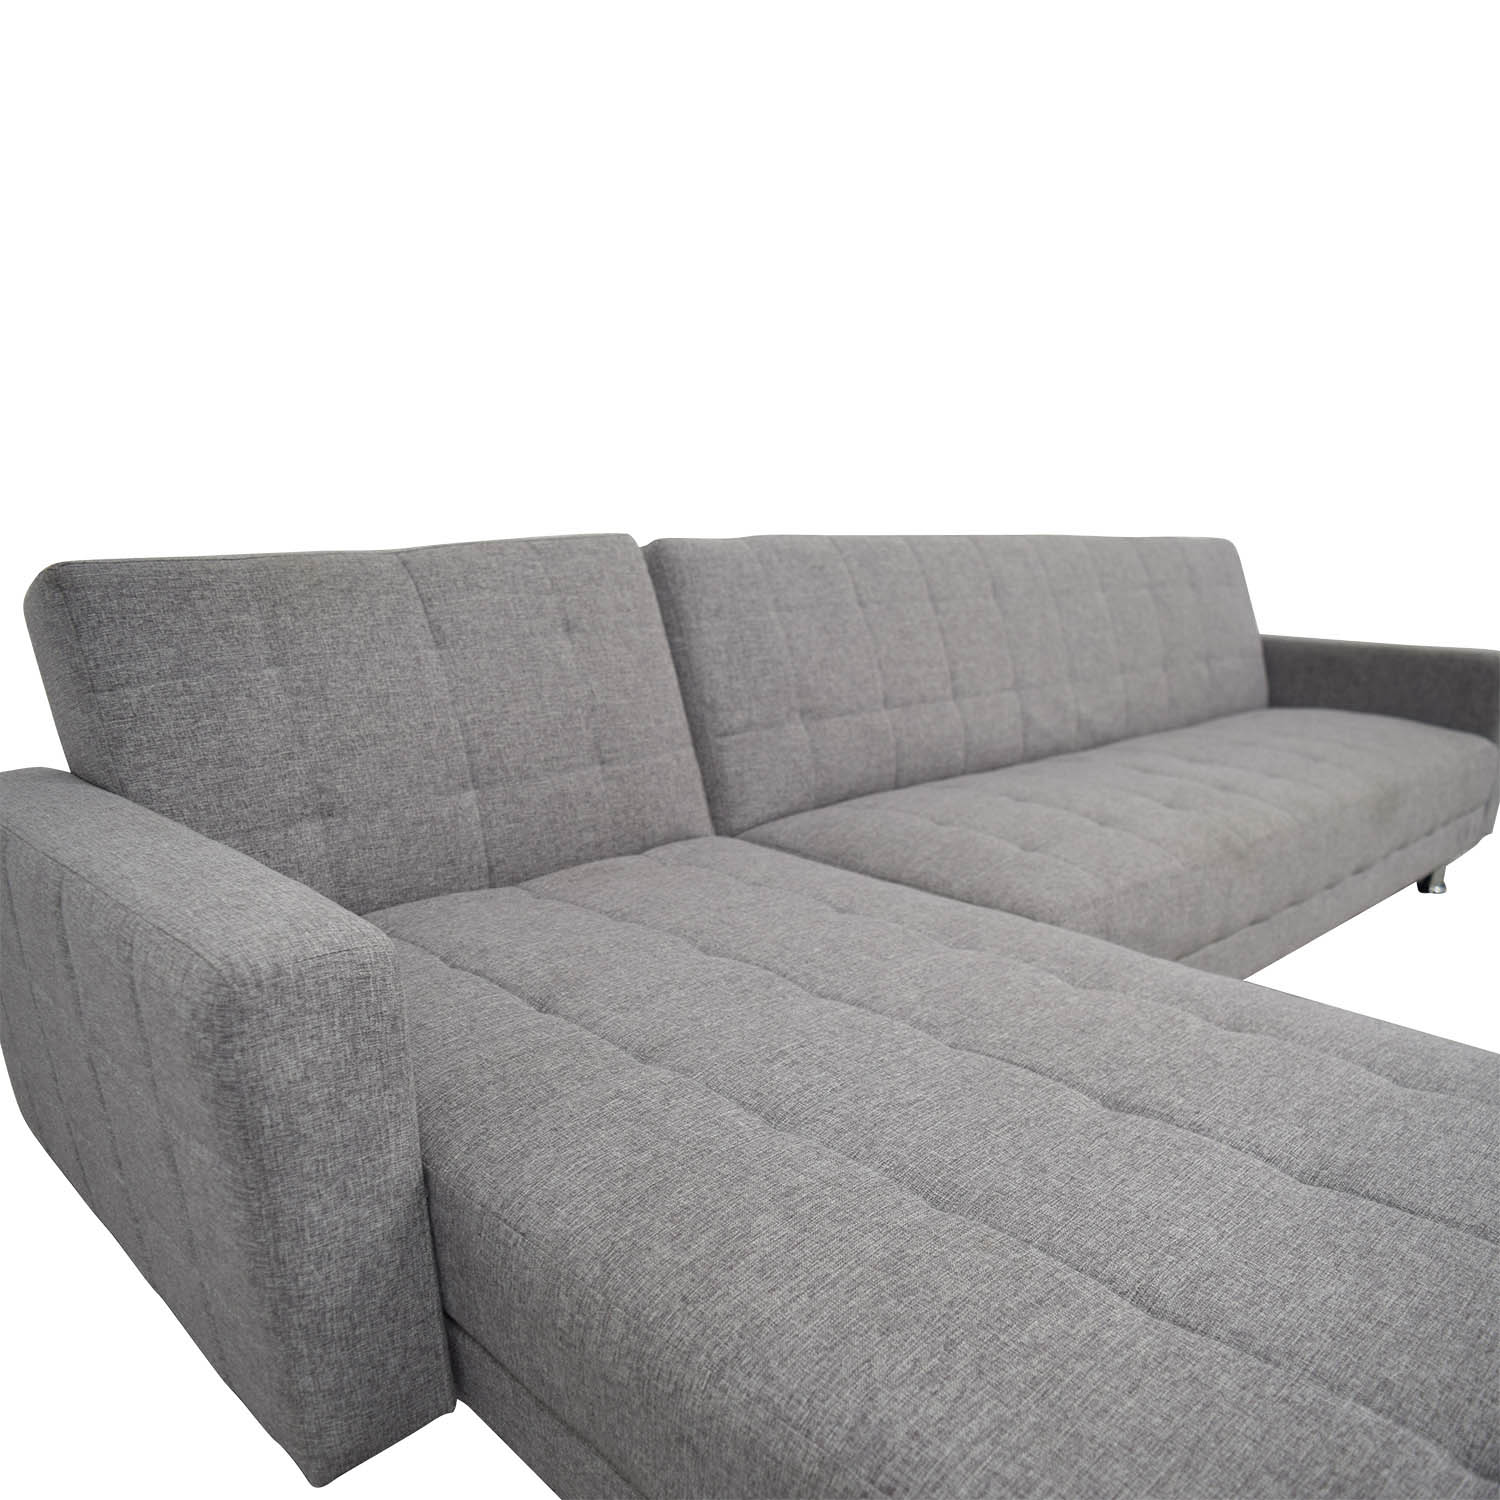 47 Off Grey L Shaped Sectional Sofas